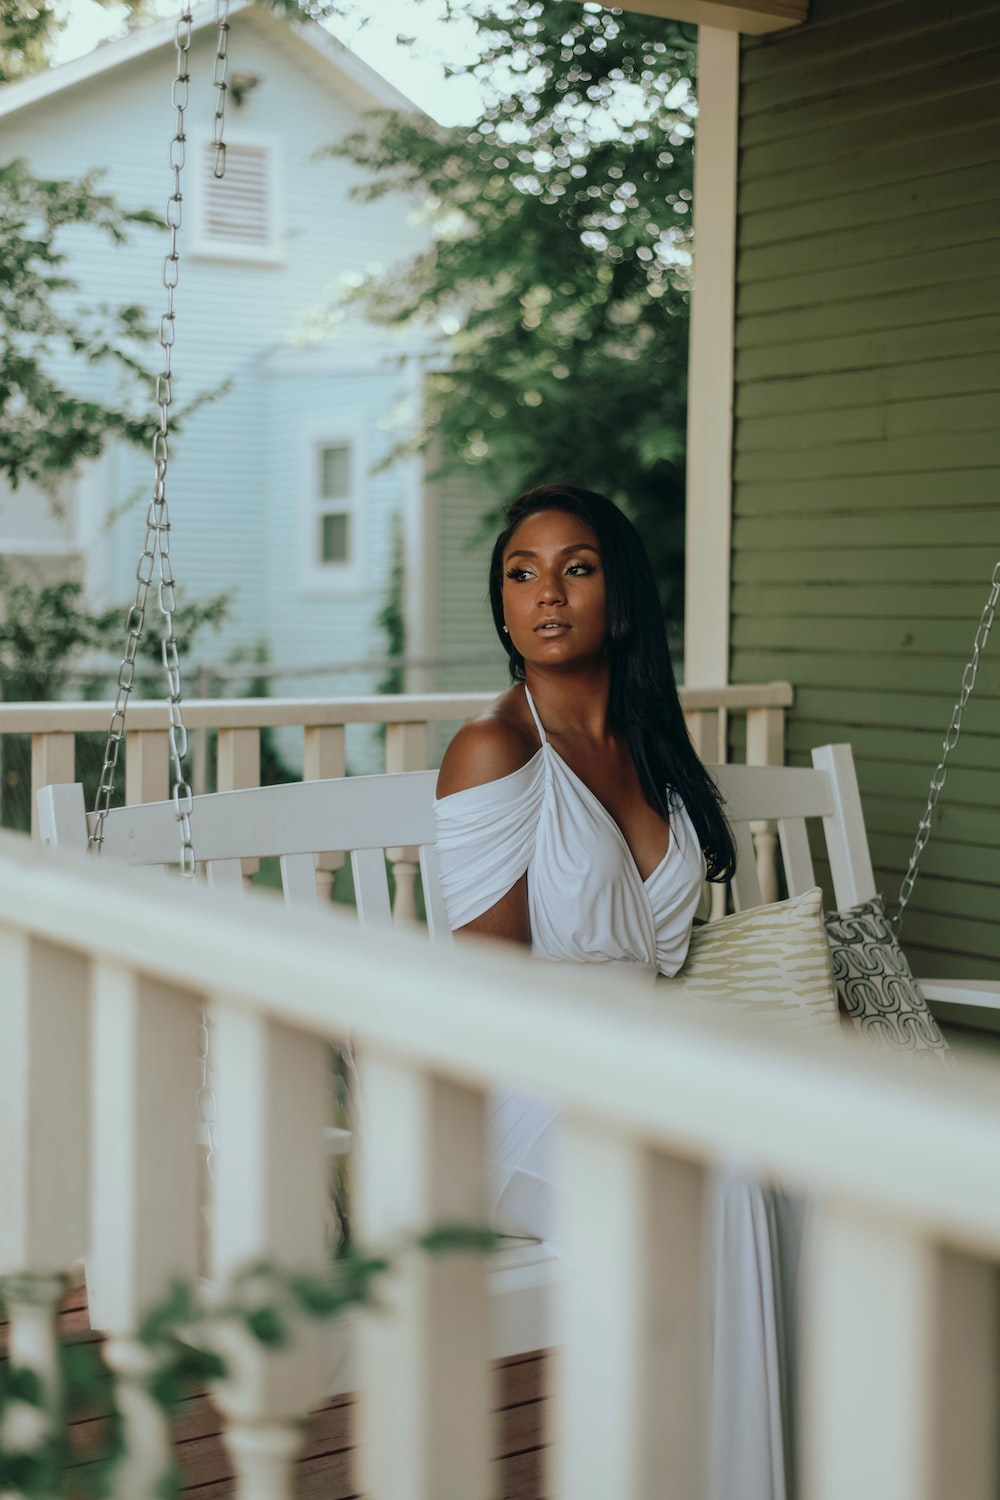 woman in white tank top standing on white wooden porch during daytime